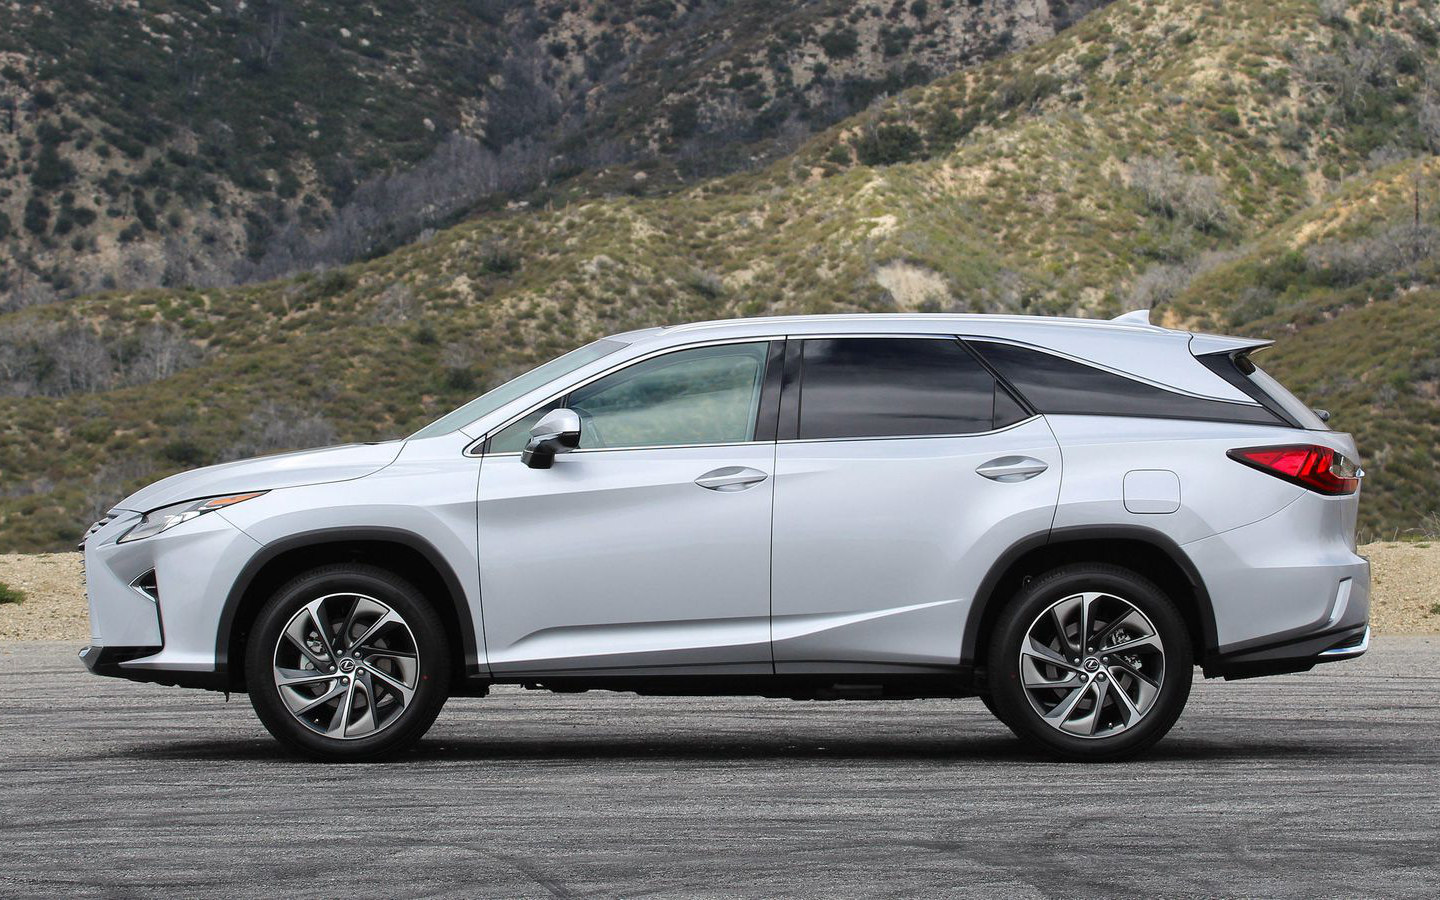 Lexus Suv 2018 Comparison Lexus Rx 350l Luxury 2018 Vs Acura Mdx